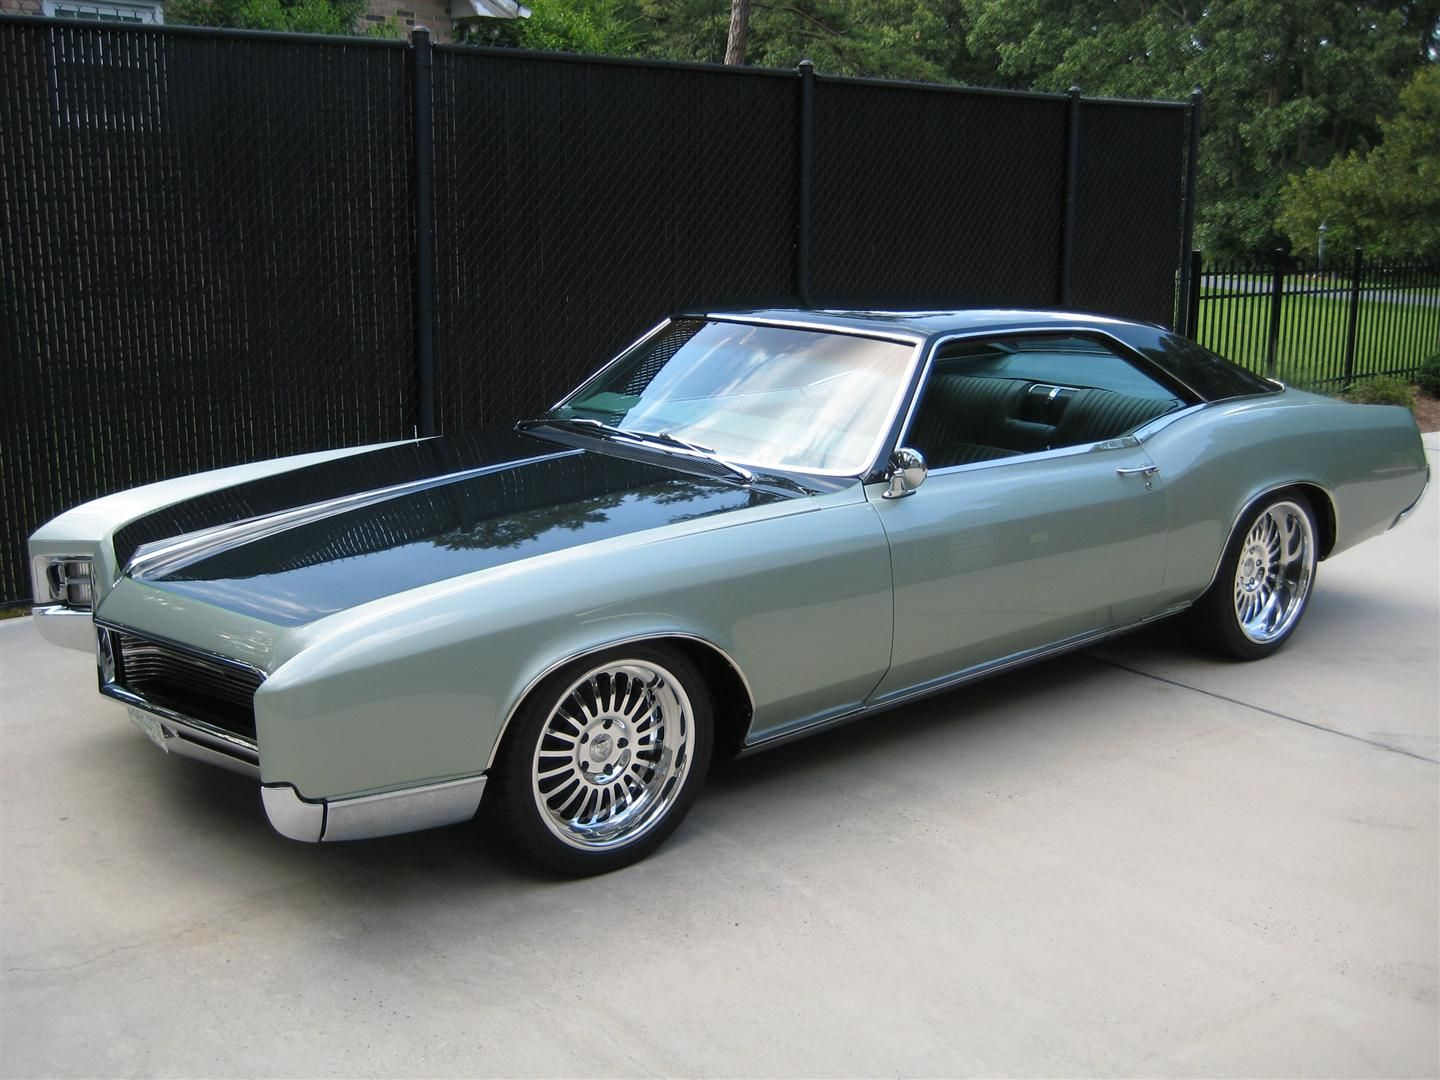 Beau Shiny Riviera U2013 Buick Riviera On True Forged Wheels